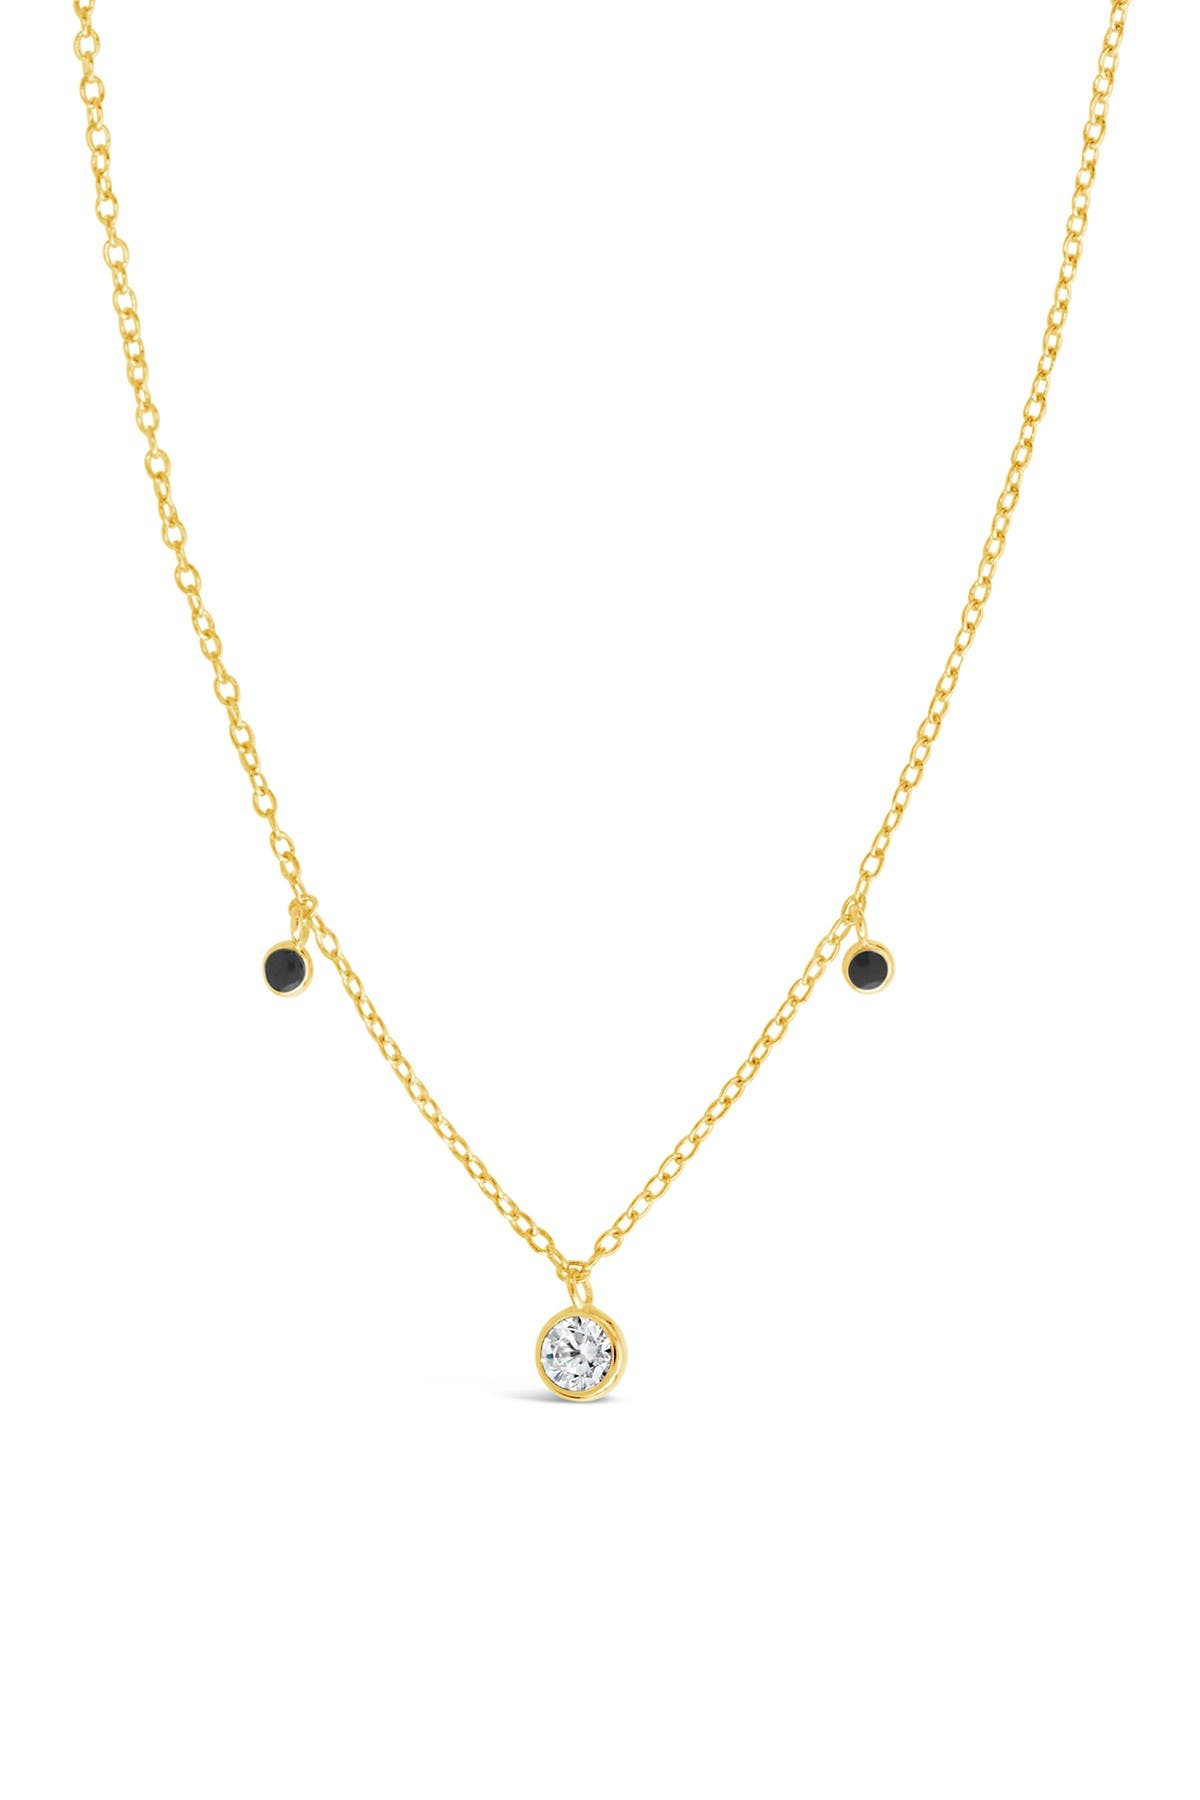 Image of Sterling Forever 14K Gold Vermeil Plated Sterling Silver Black Enamel & CZ Charm Necklace